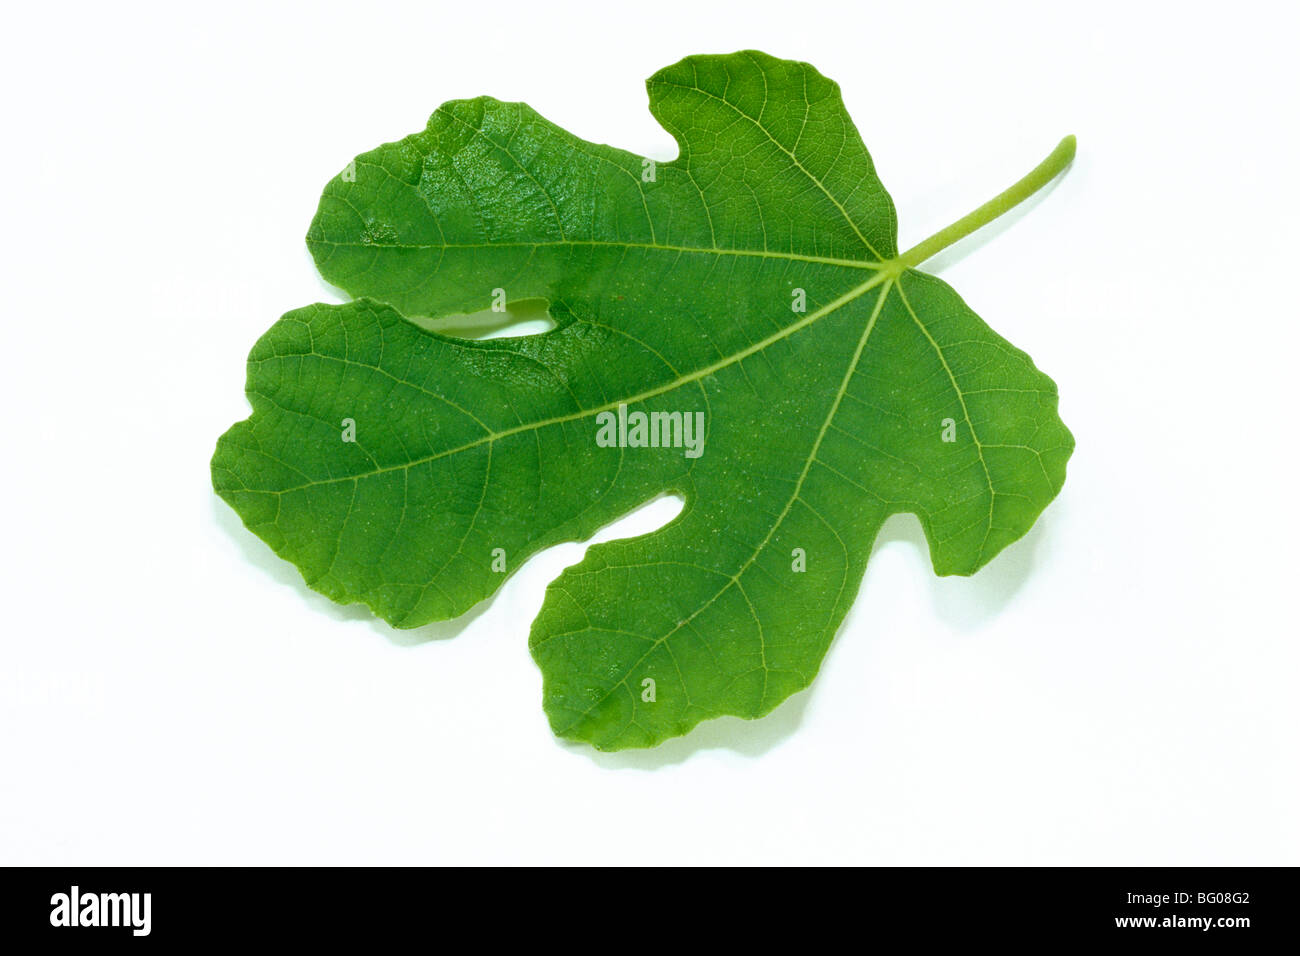 Common Fig (Ficus carica), leaf, studio picture. - Stock Image